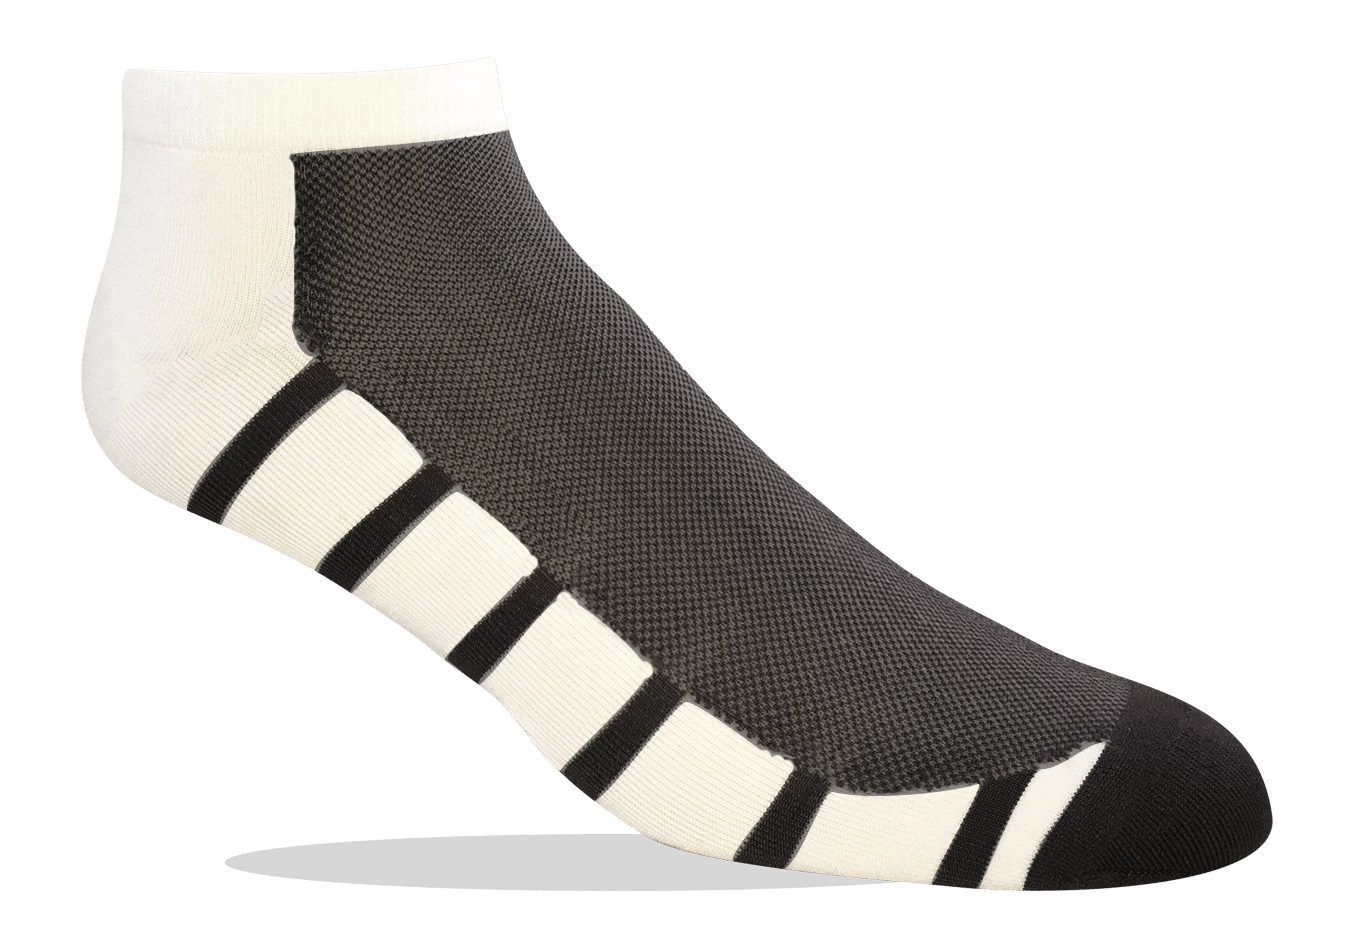 52a7812985e4 Mens Supralite | Cyclist Socks | Runner Socks | JoxSox